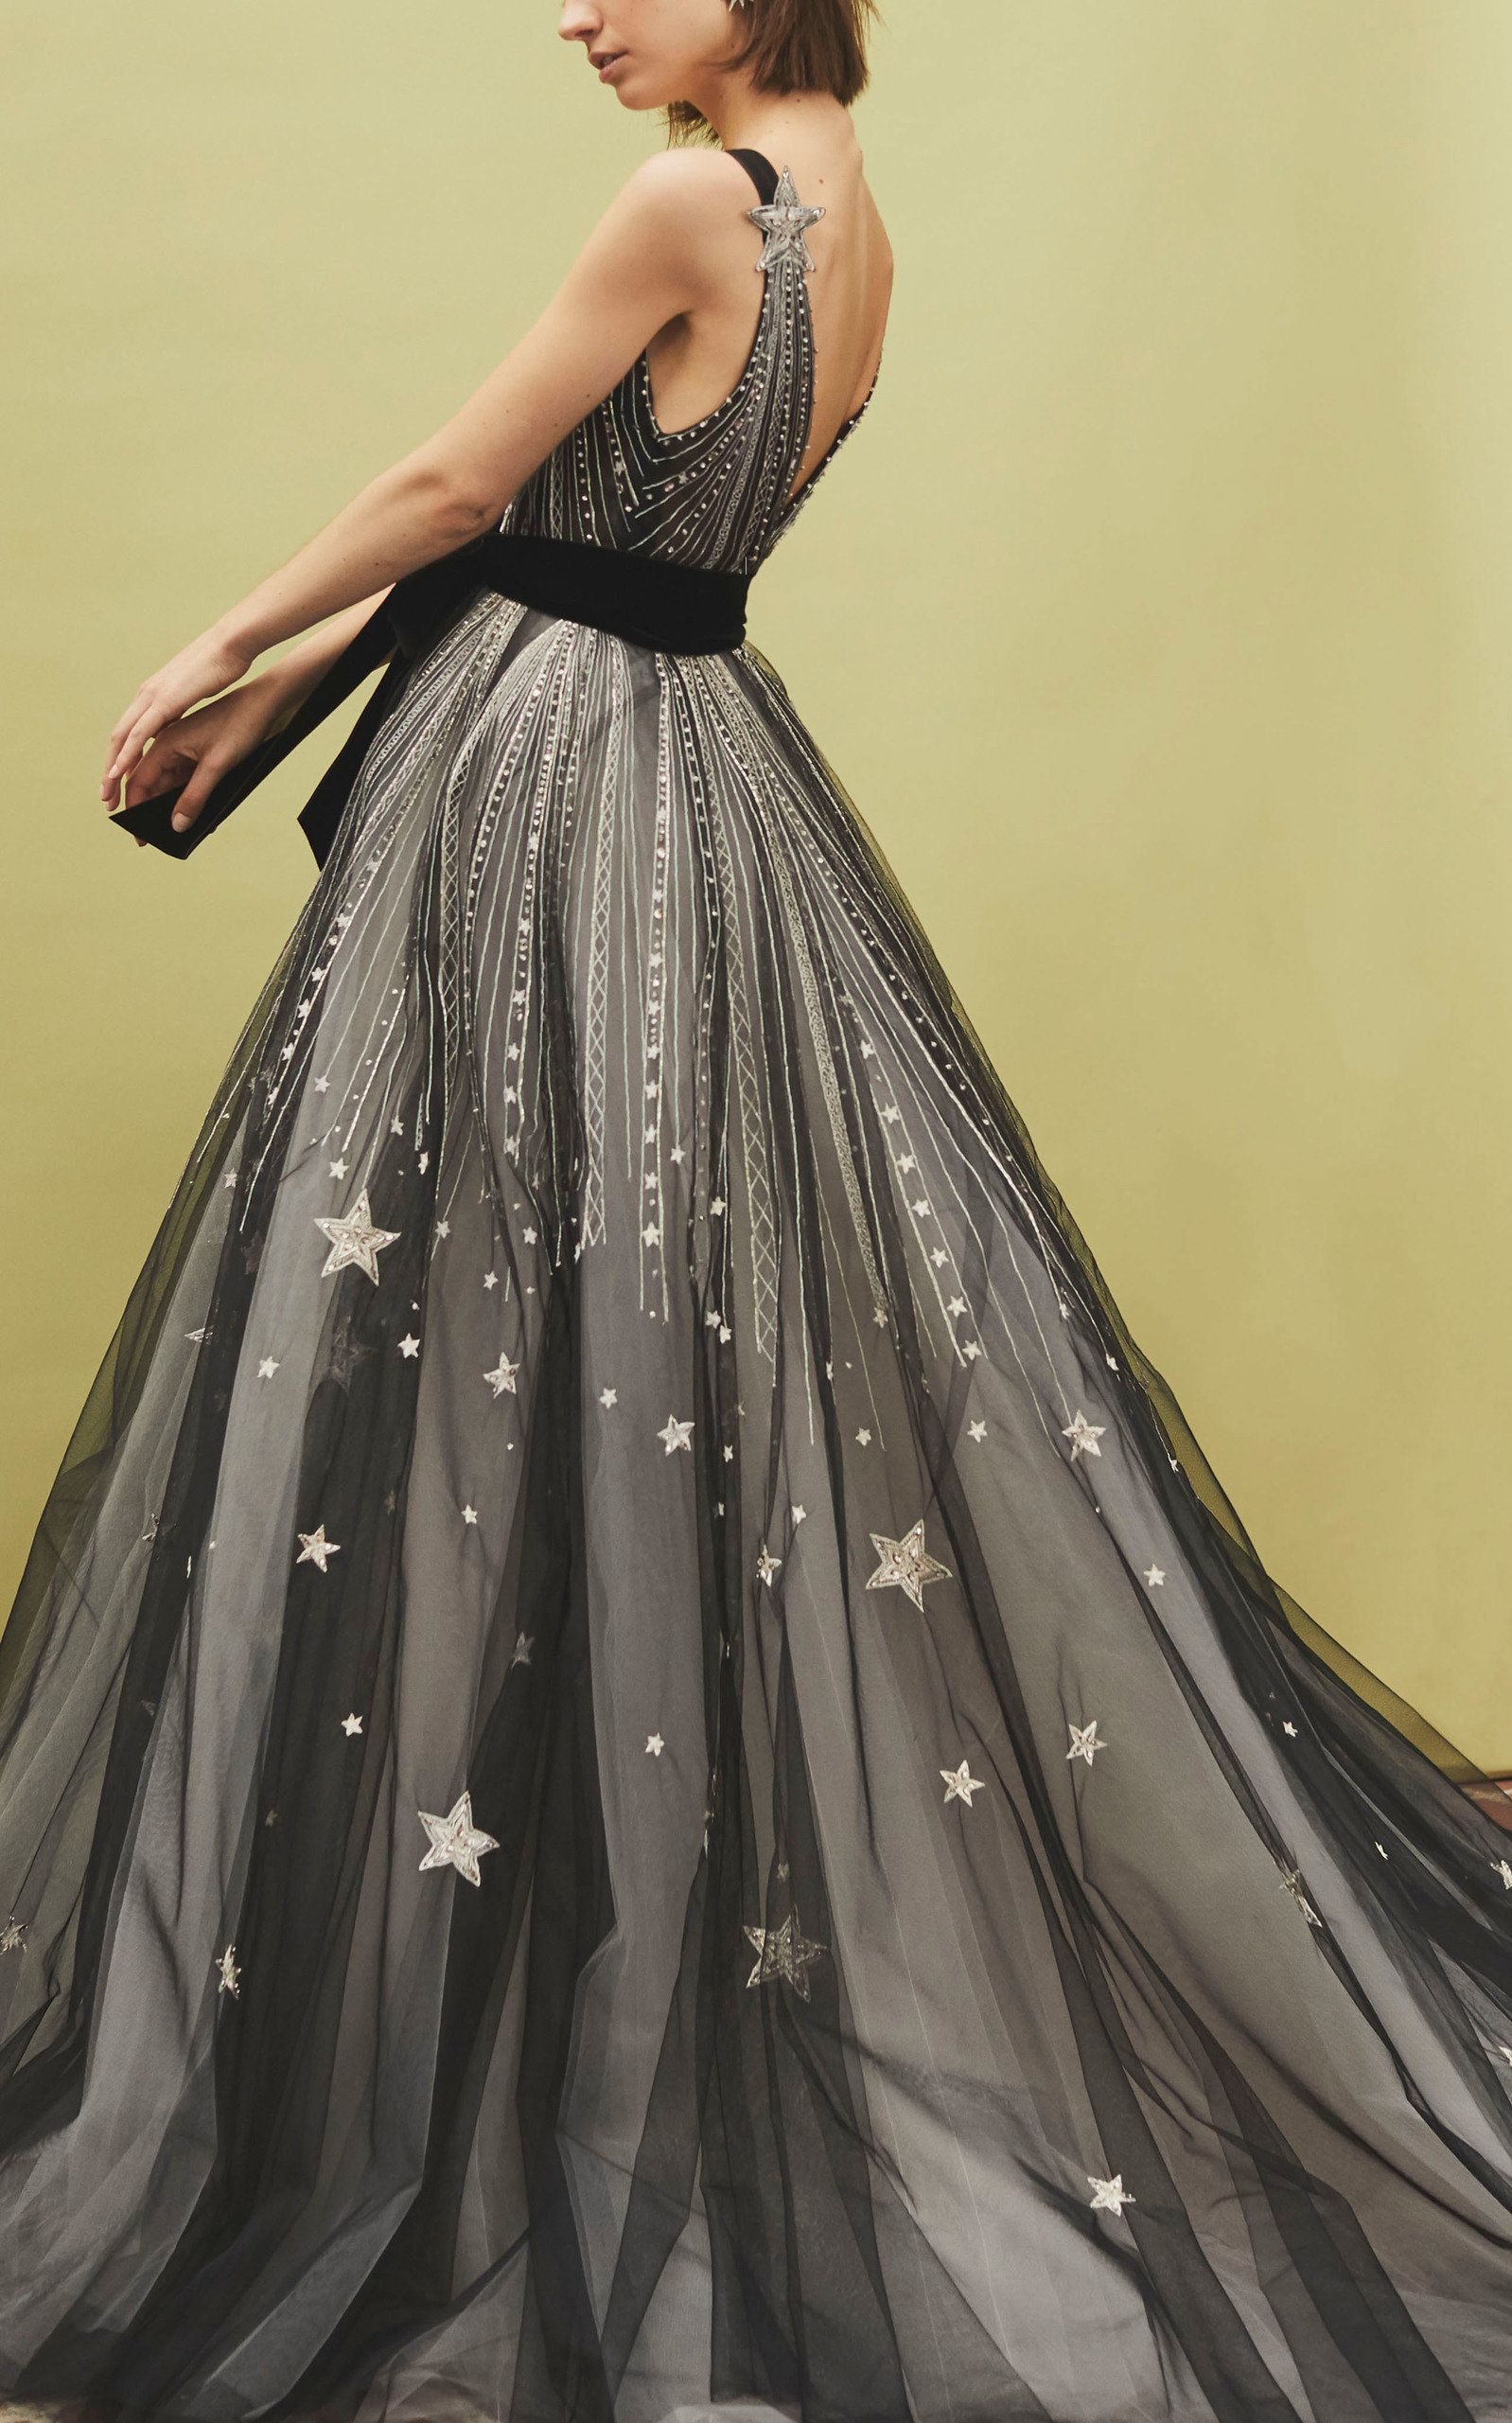 V Neck Star Embellished Gown With Velvet Bow Belt By Monique Lhuillier For Preorder On Moda Operandi Gowns Tulle Gown Embellished Gown